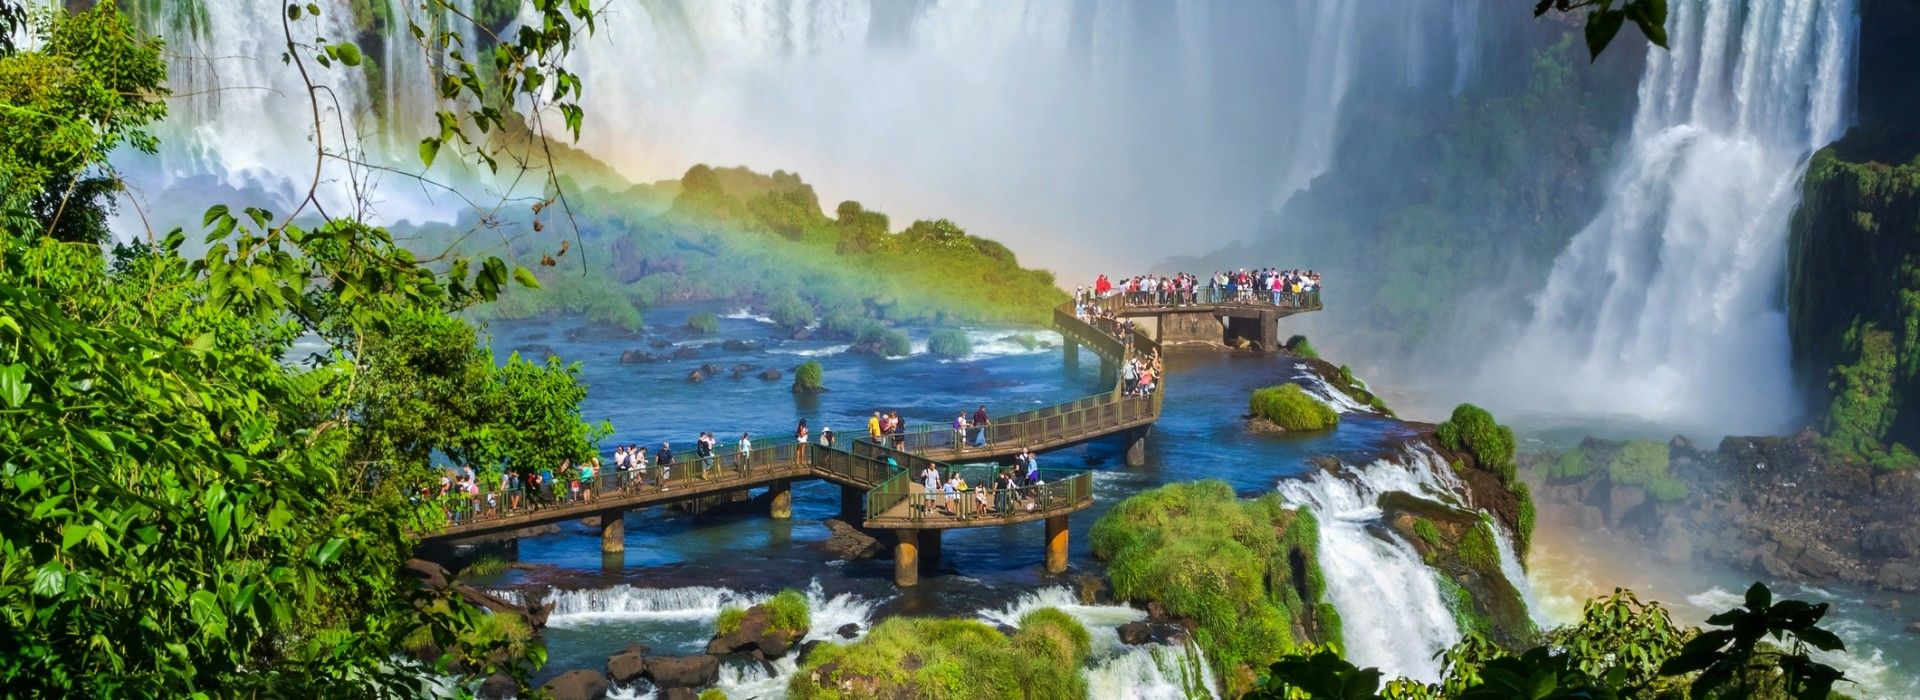 South America Tours and Trips to South America